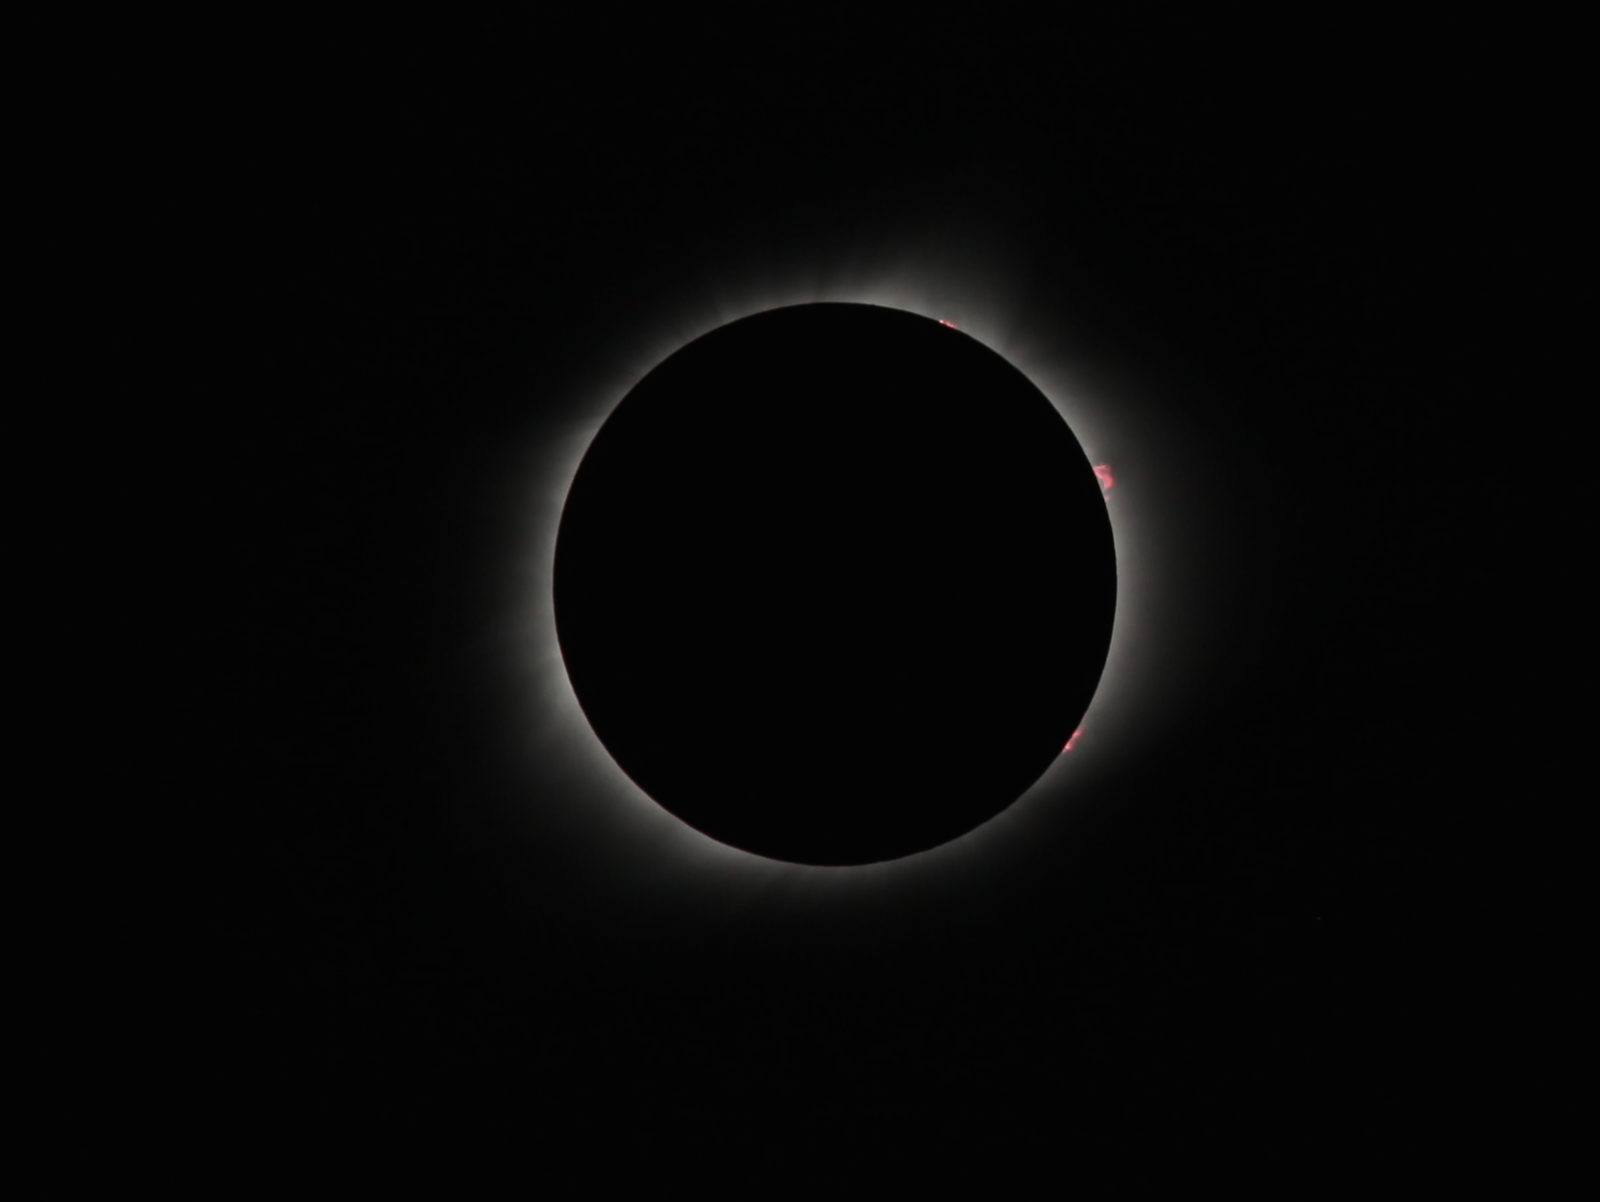 Solar flare during totality